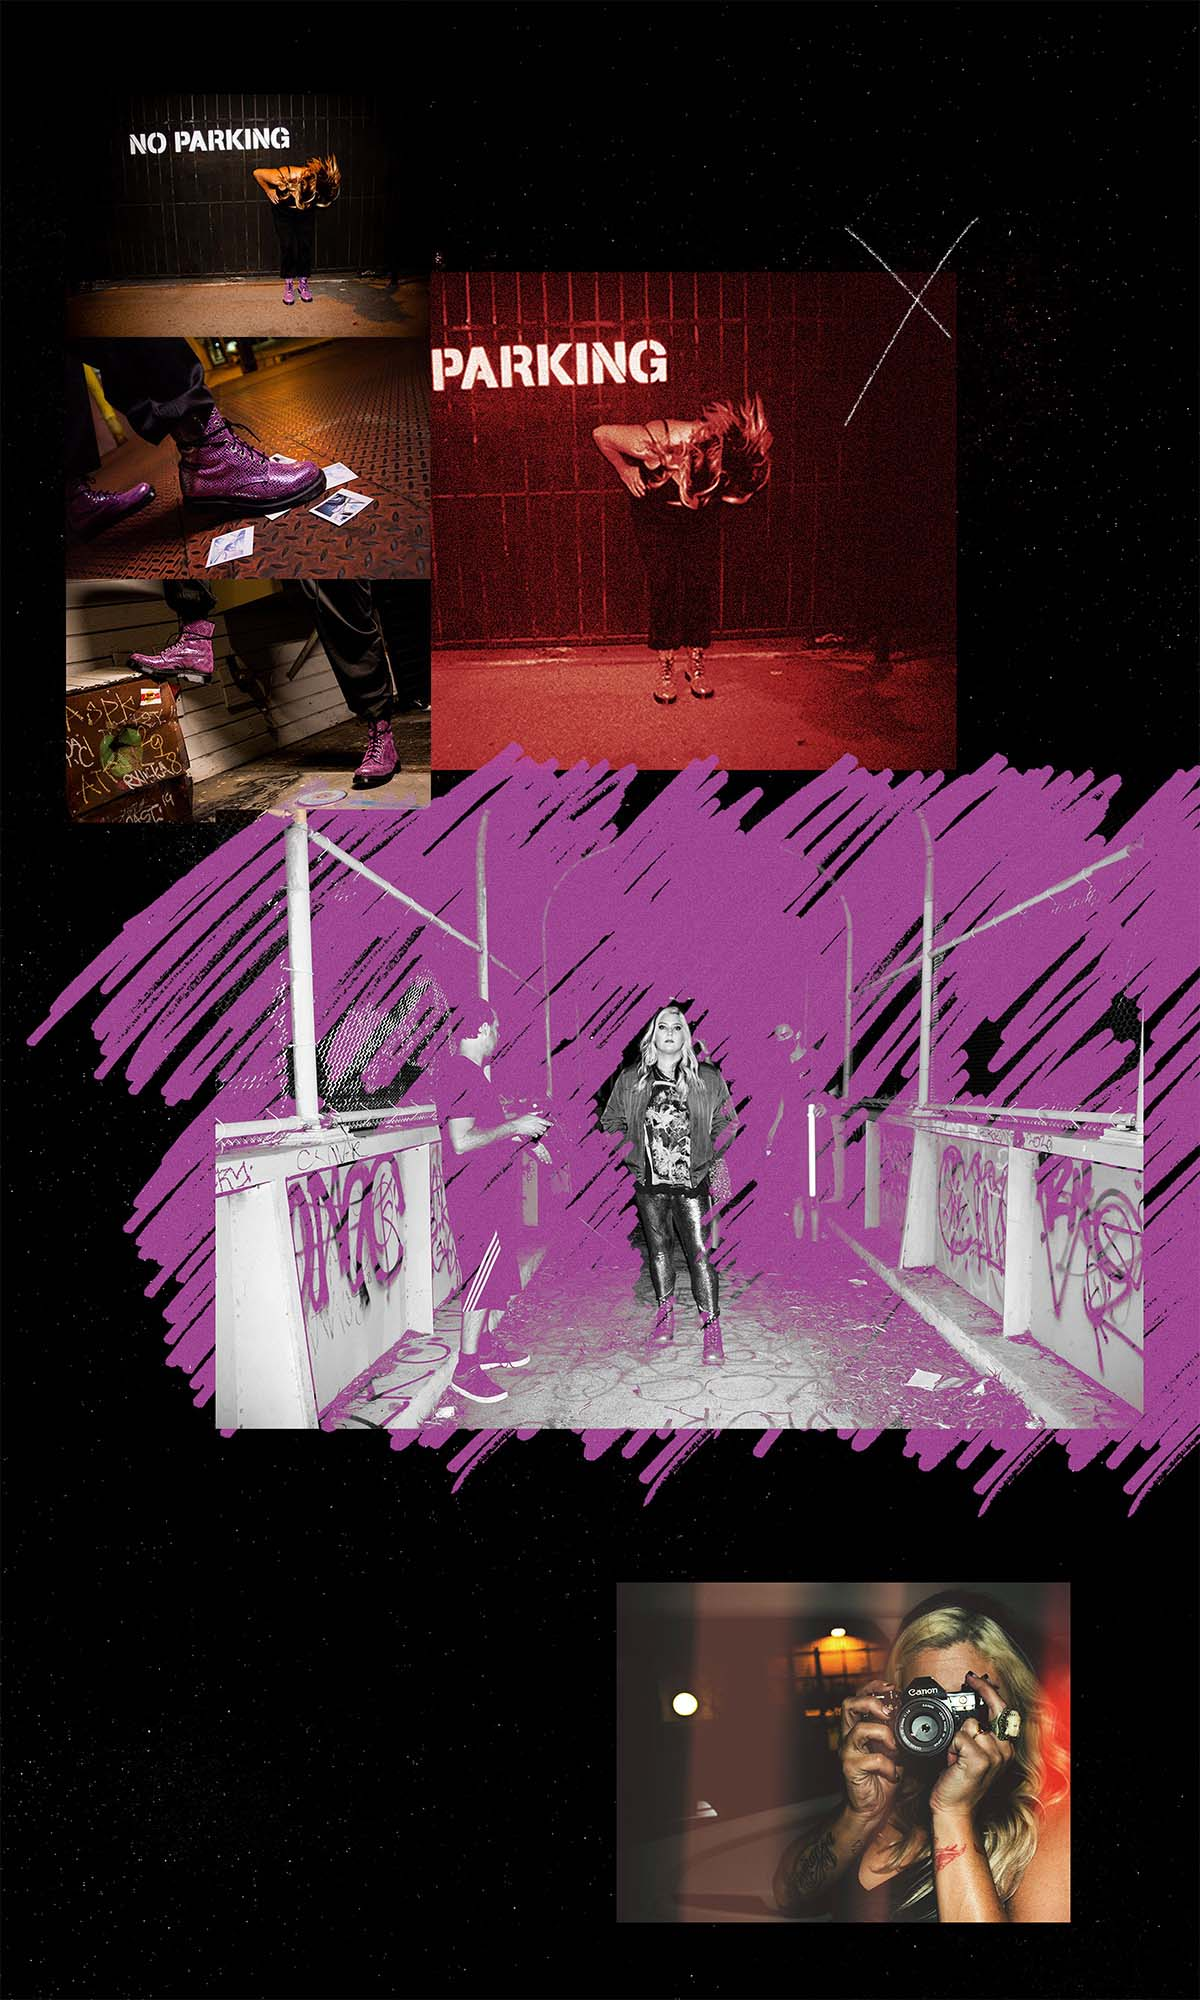 A collage of photos featuring Ali's purple Doc Martens boots, purple highlights to accentuate the focus of the photo, and Ali holding a camera to take a picture